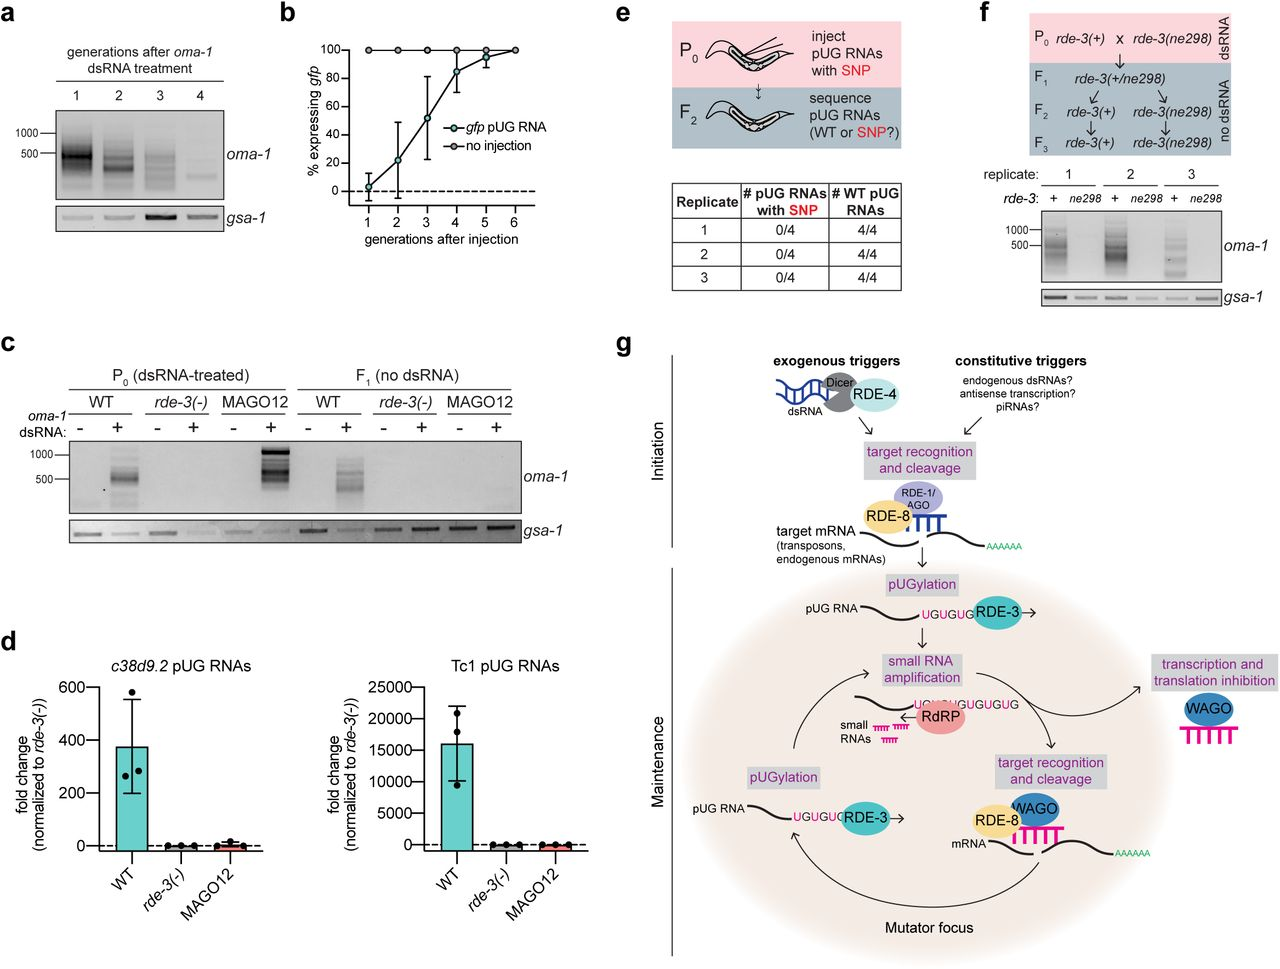 pUG RNAs and siRNAs cooperate to drive heritable gene silencing. a , oma-1 pUG PCR was performed on RNA isolated from four generations of descendants (F 1 -F 4 ) derived from oma-1 dsRNA-treated animals. b, rde-1(ne219); gfp::h2b animals were injected with a gfp pUG RNA and gfp expression was monitored for six generations. c, MAGO12 animals, which harbor deletions in all twelve wago genes, were treated with oma-1 dsRNA. oma-1 pUG PCR was performed on total RNA from dsRNA-treated animals (P 0 ) and their progeny (F 1 ). Note: pUG RNAs appear longer in MAGO12 animals (see Extended Data Fig. 9 legend). d, c38d9.2 and Tc1 pUG RNA expression levels were quantified in embryos harvested from wild-type, MAGO12, or rde-3(-) animals. Shown is the fold change normalized to rde-3(-). e, rde-1(ne219); oma-1(zu405ts) animals were injected with an oma-1(SNP) pUG RNA. pUG RNAs were Sanger sequenced from F 2 progeny to determine the presence or absence of the SNP. f, Wild-type and rde-3(ne298) animals subjected to oma-1 RNAi were crossed and F 2 progeny were genotyped (not shown). RNA isolated from populations of rde-3(+) or rde-3(ne298) F 3 animals (3 biological replicates) was subjected to oma-1 pUG PCR. g, Model. Two major phases of the pUG RNA pathway, initiation and maintenance, are shown. Initiation : exogenous and constitutive (i.e. genomically-encoded such as dsRNA, piRNAs) triggers direct RDE-3 to pUGylate RNAs previously fragmented by RNAi, and possibly other, systems. Maintenance : pUG RNA are templates for RdRPs to make 2° siRNAs. Argonaute proteins (termed WAGOs) bind these 2° siRNAs and: 1) target homologous RNAs for transcriptional and translational silencing (previous work 25 , 30 , 38 , 39 ), and 2) direct the cleavage and de novo RDE-3-mediated pUGylation of additional mRNAs (this work). In this way, cycles of pUG RNA-based siRNA production and siRNA-directed mRNA pUGylation form a silencing loop, which is maintained over time and across generations to mediate stable gene silencing. pUG/siRNA cycling likely occurs in germline perinuclear condensates called Mutator foci.